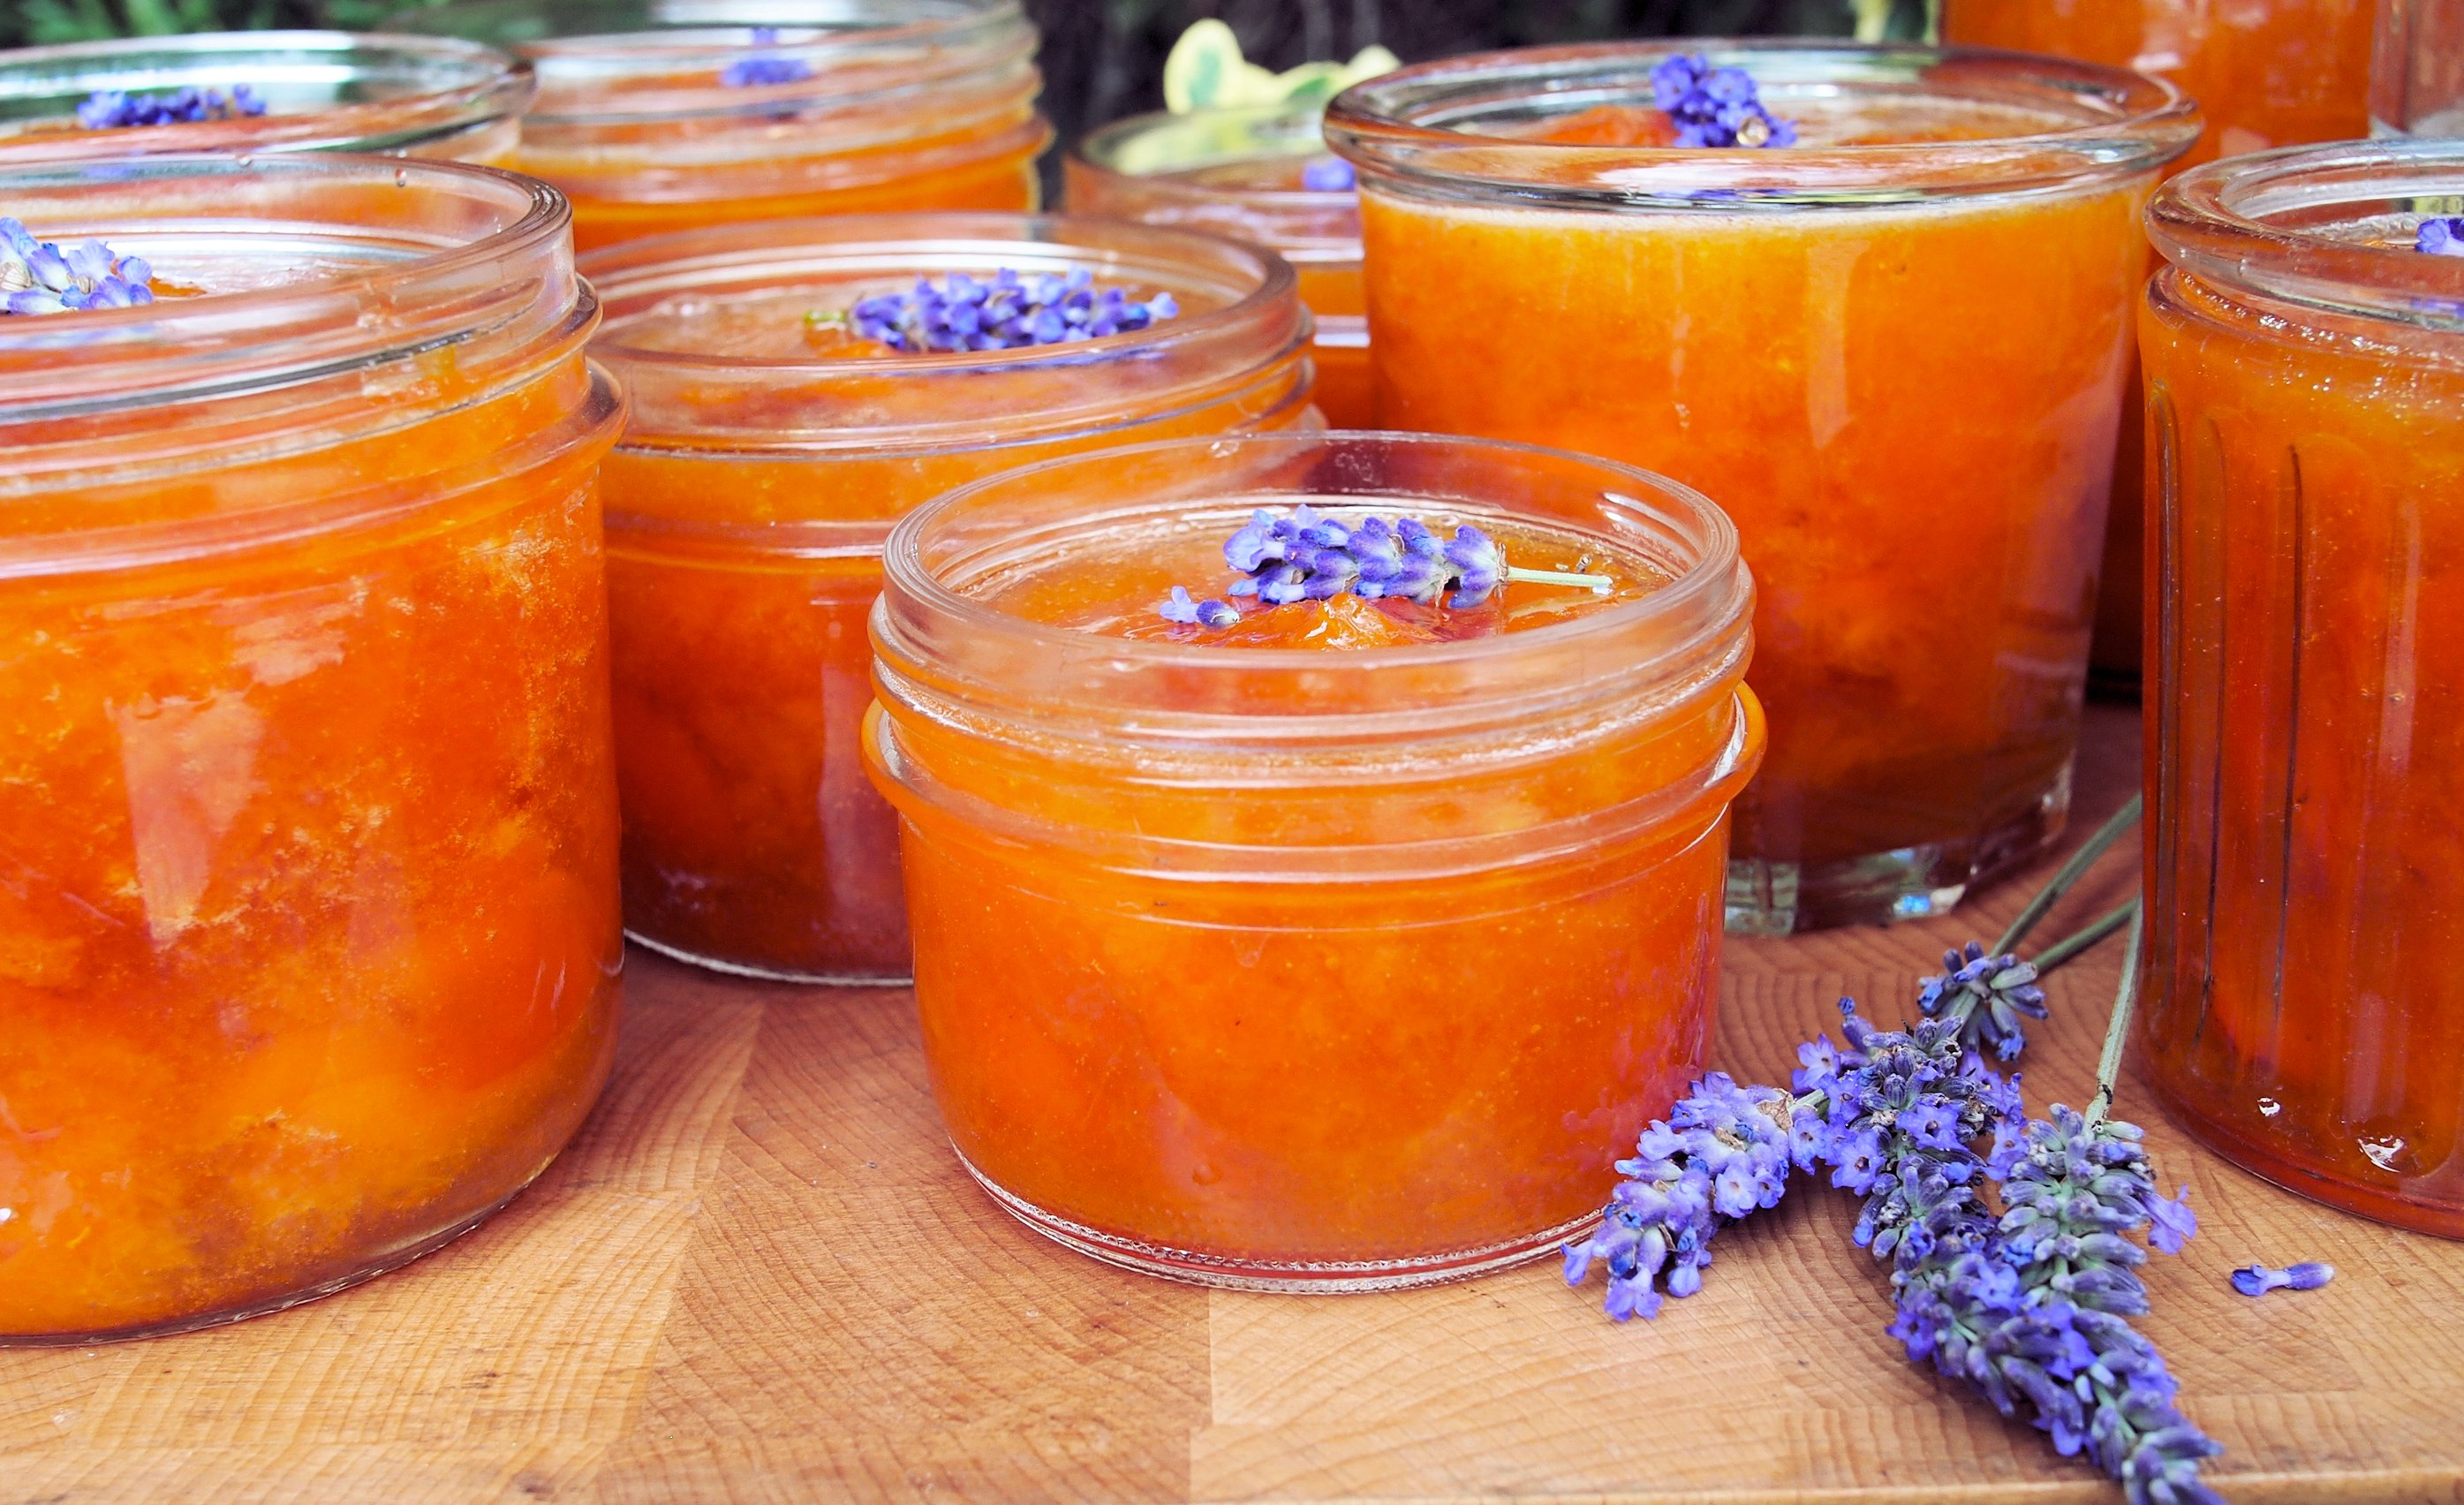 French Set Apricot and Lavender Jam (Confiture) - Lavender and Lovage